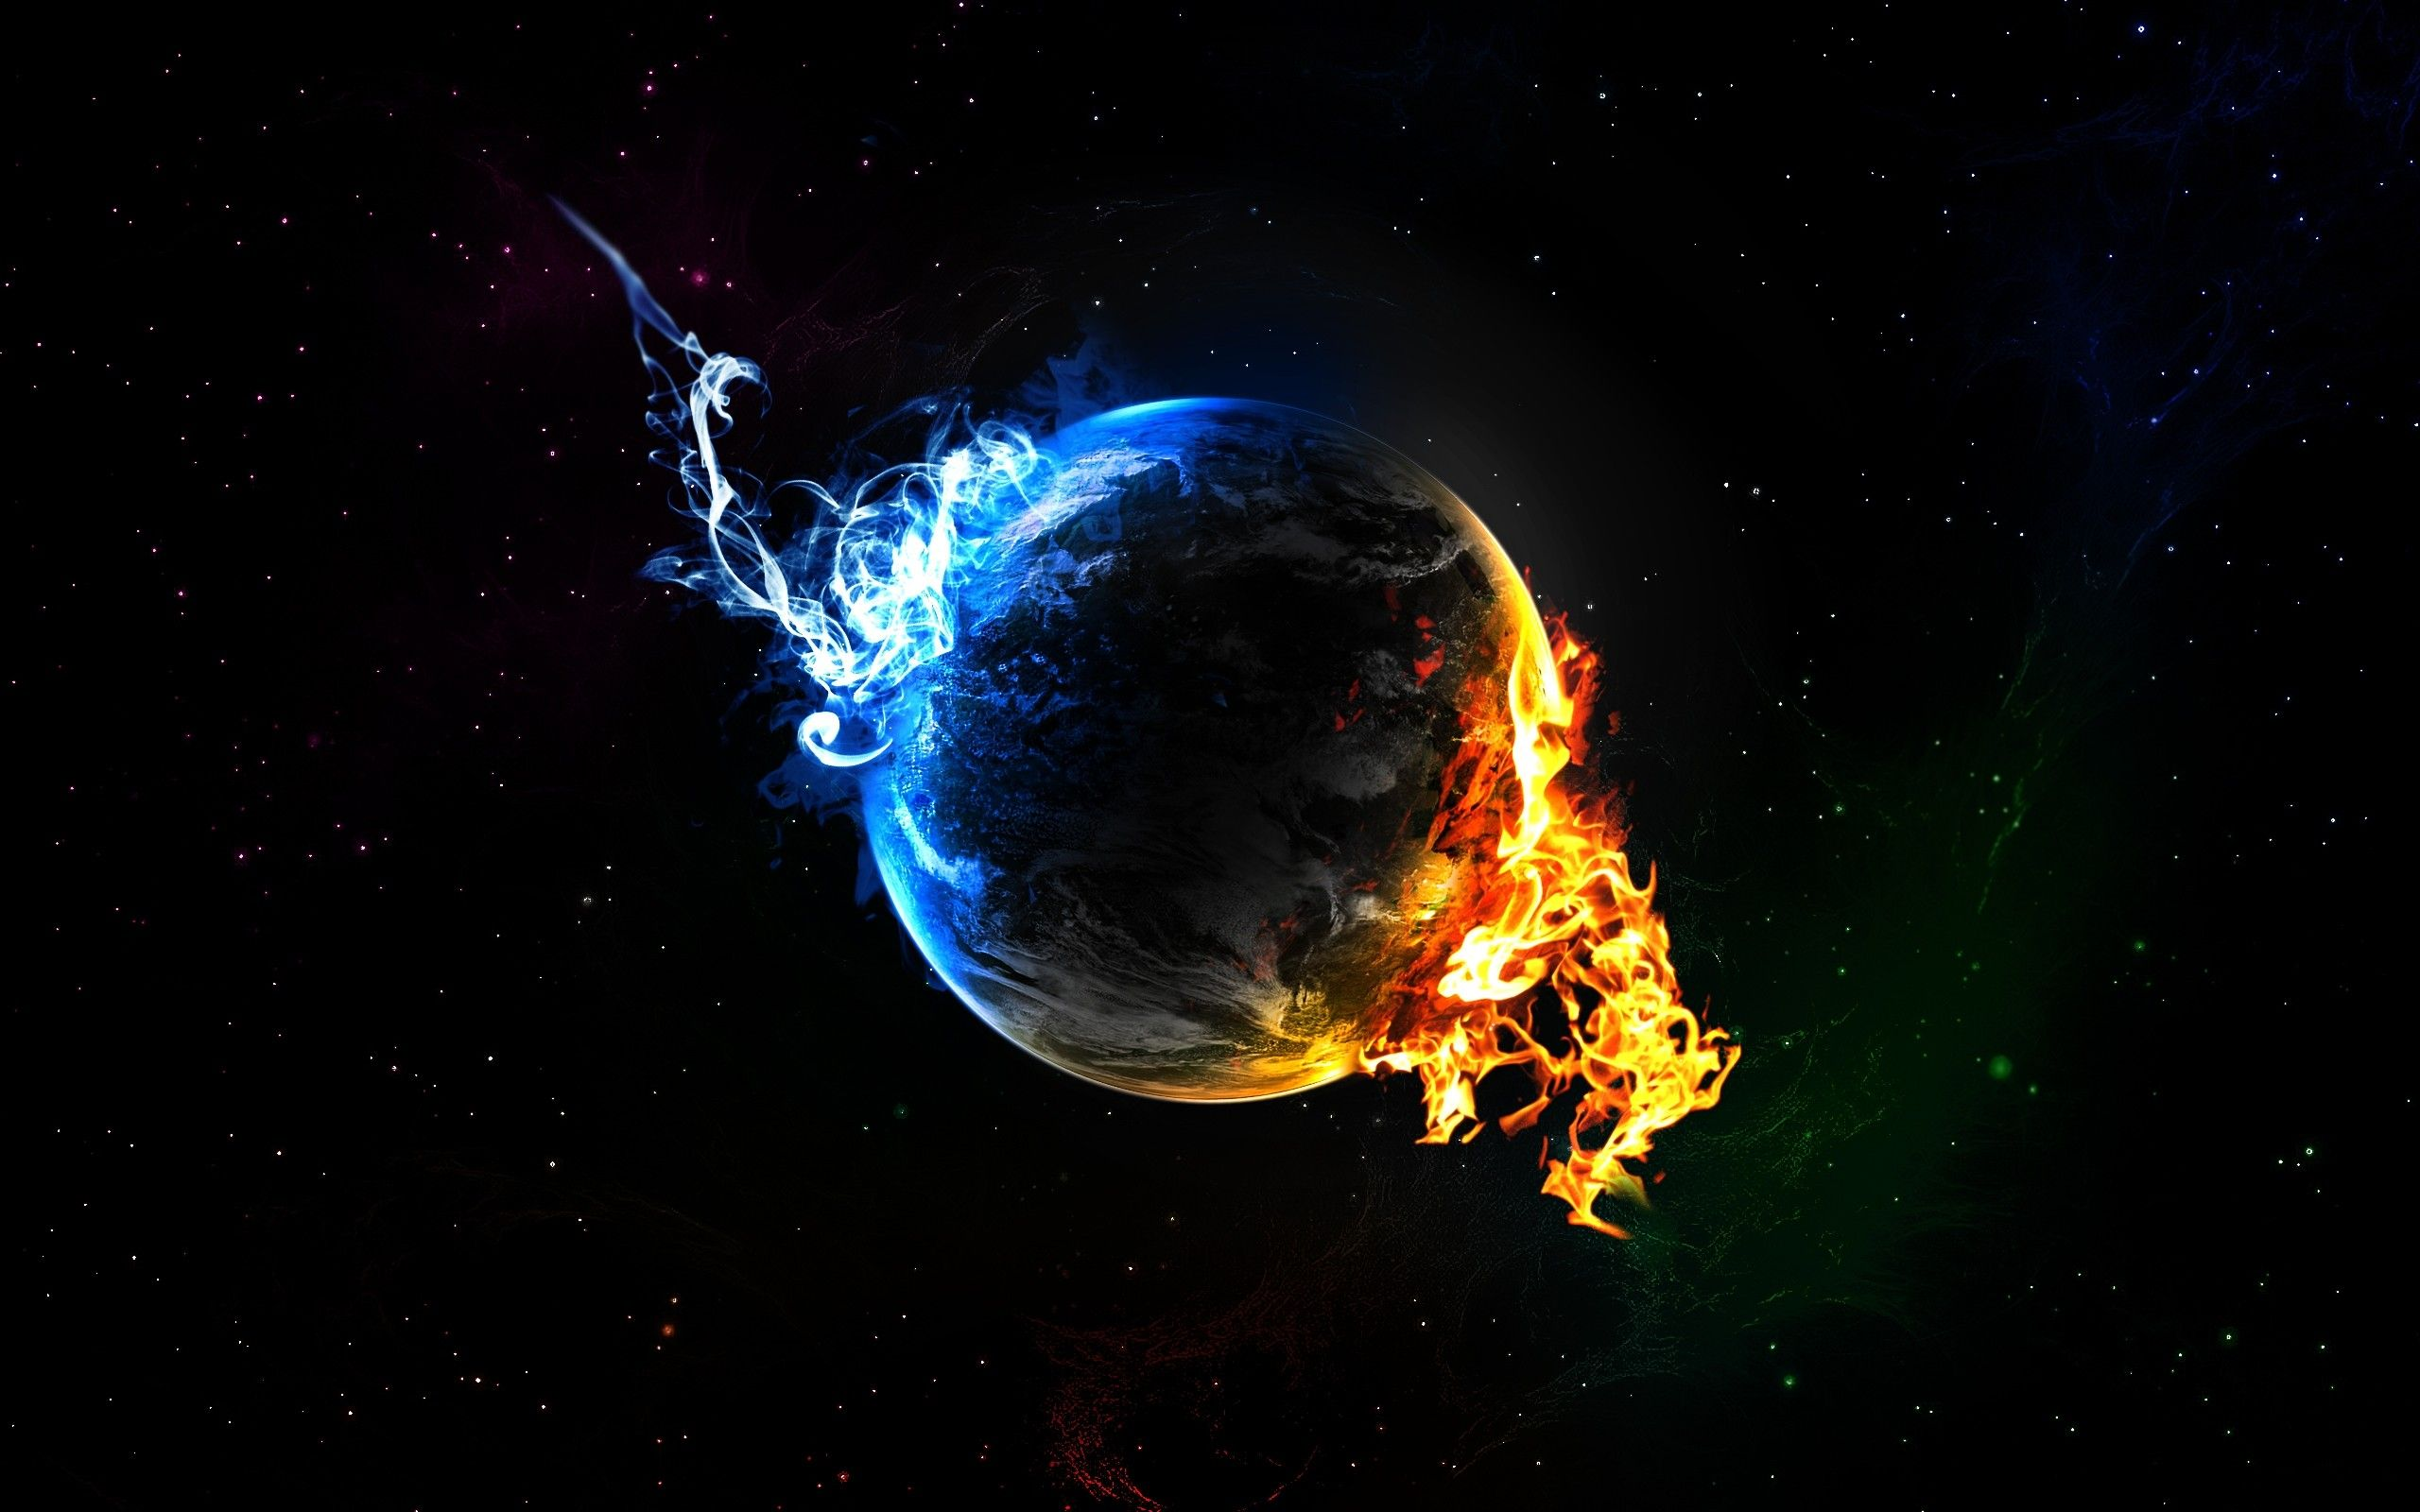 Earth Black Background Elements Fire Outer Space Wallpaper 1031990 Wallbase Cc Cool Desktop Wallpapers Cool Desktop Backgrounds Wallpaper Earth